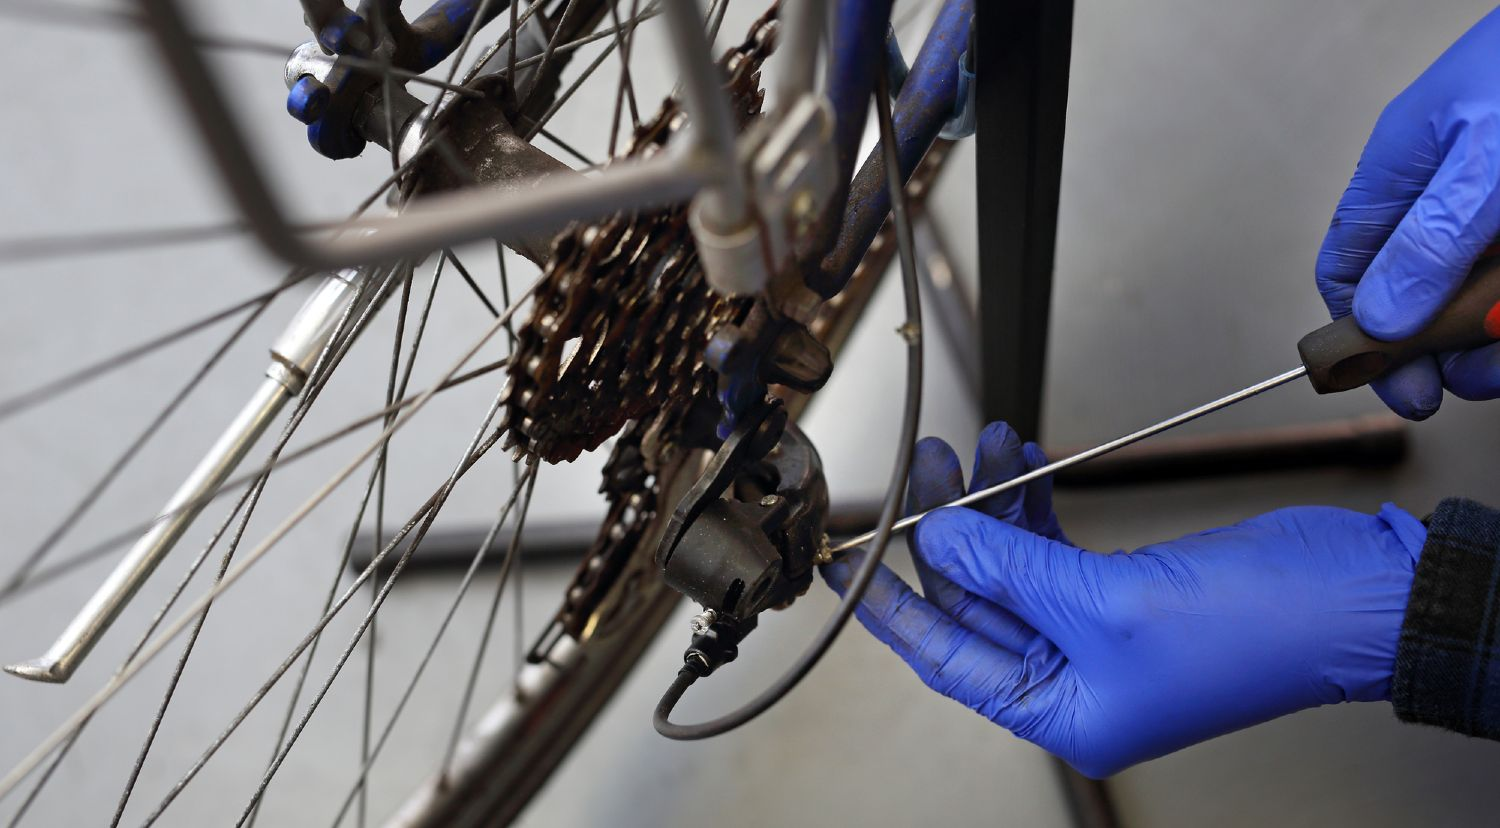 Bicycle getting repaired by a person wearing blue gloves